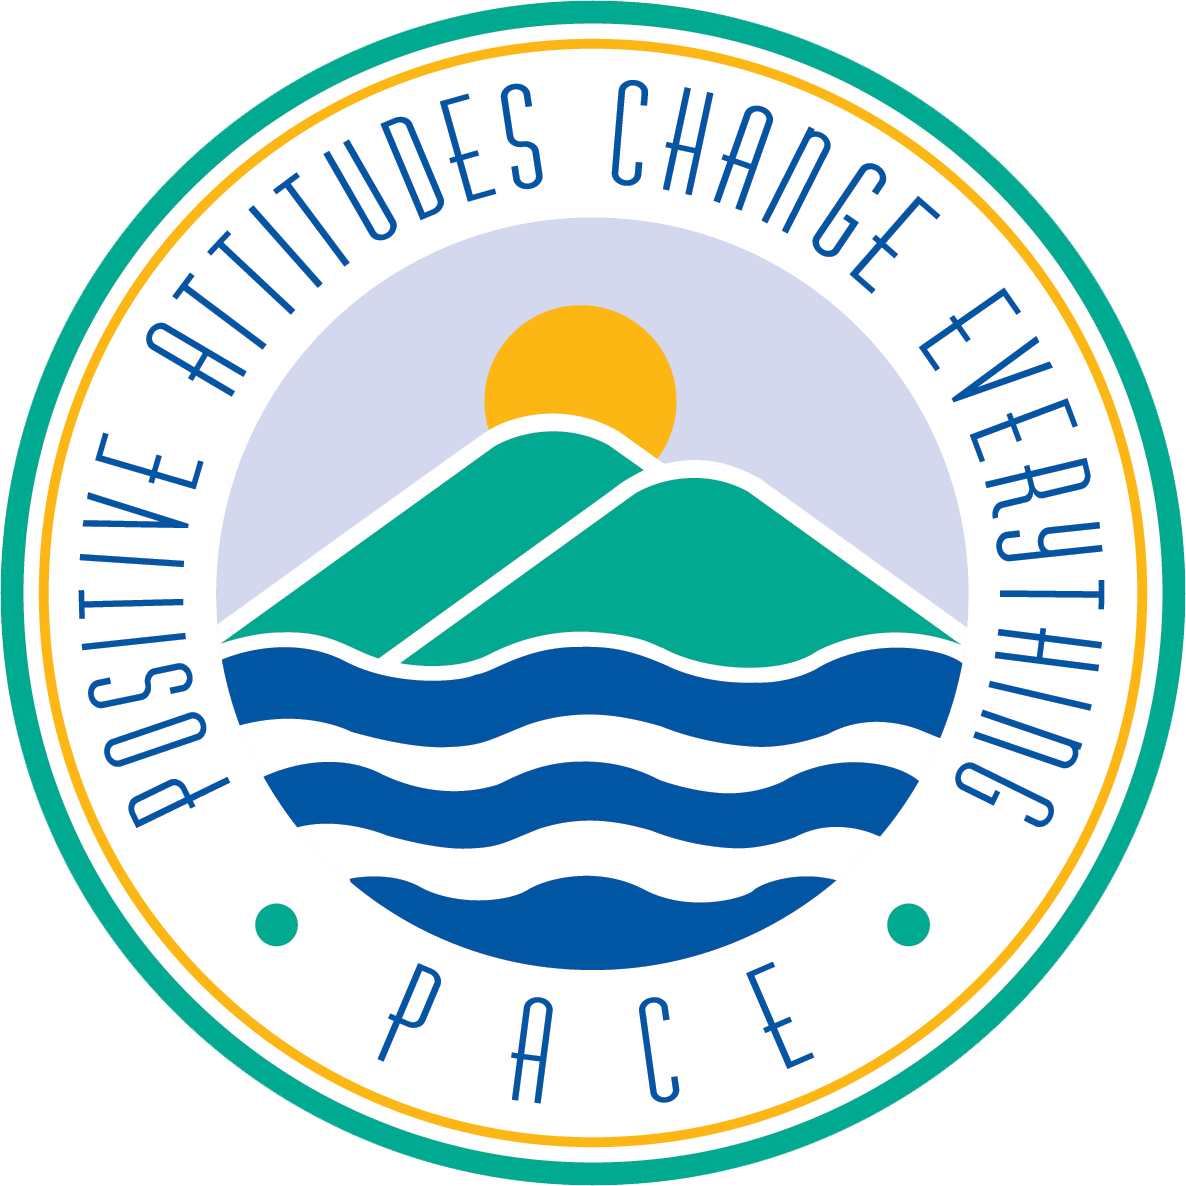 2021 MOUNTAIN MD PACE CANCELLED:  Due to concerns surrounding COVID, including ever-changing gathering size restrictions and travel concerns, the Mountain MD PACE committee has cancelled its 2021 event.